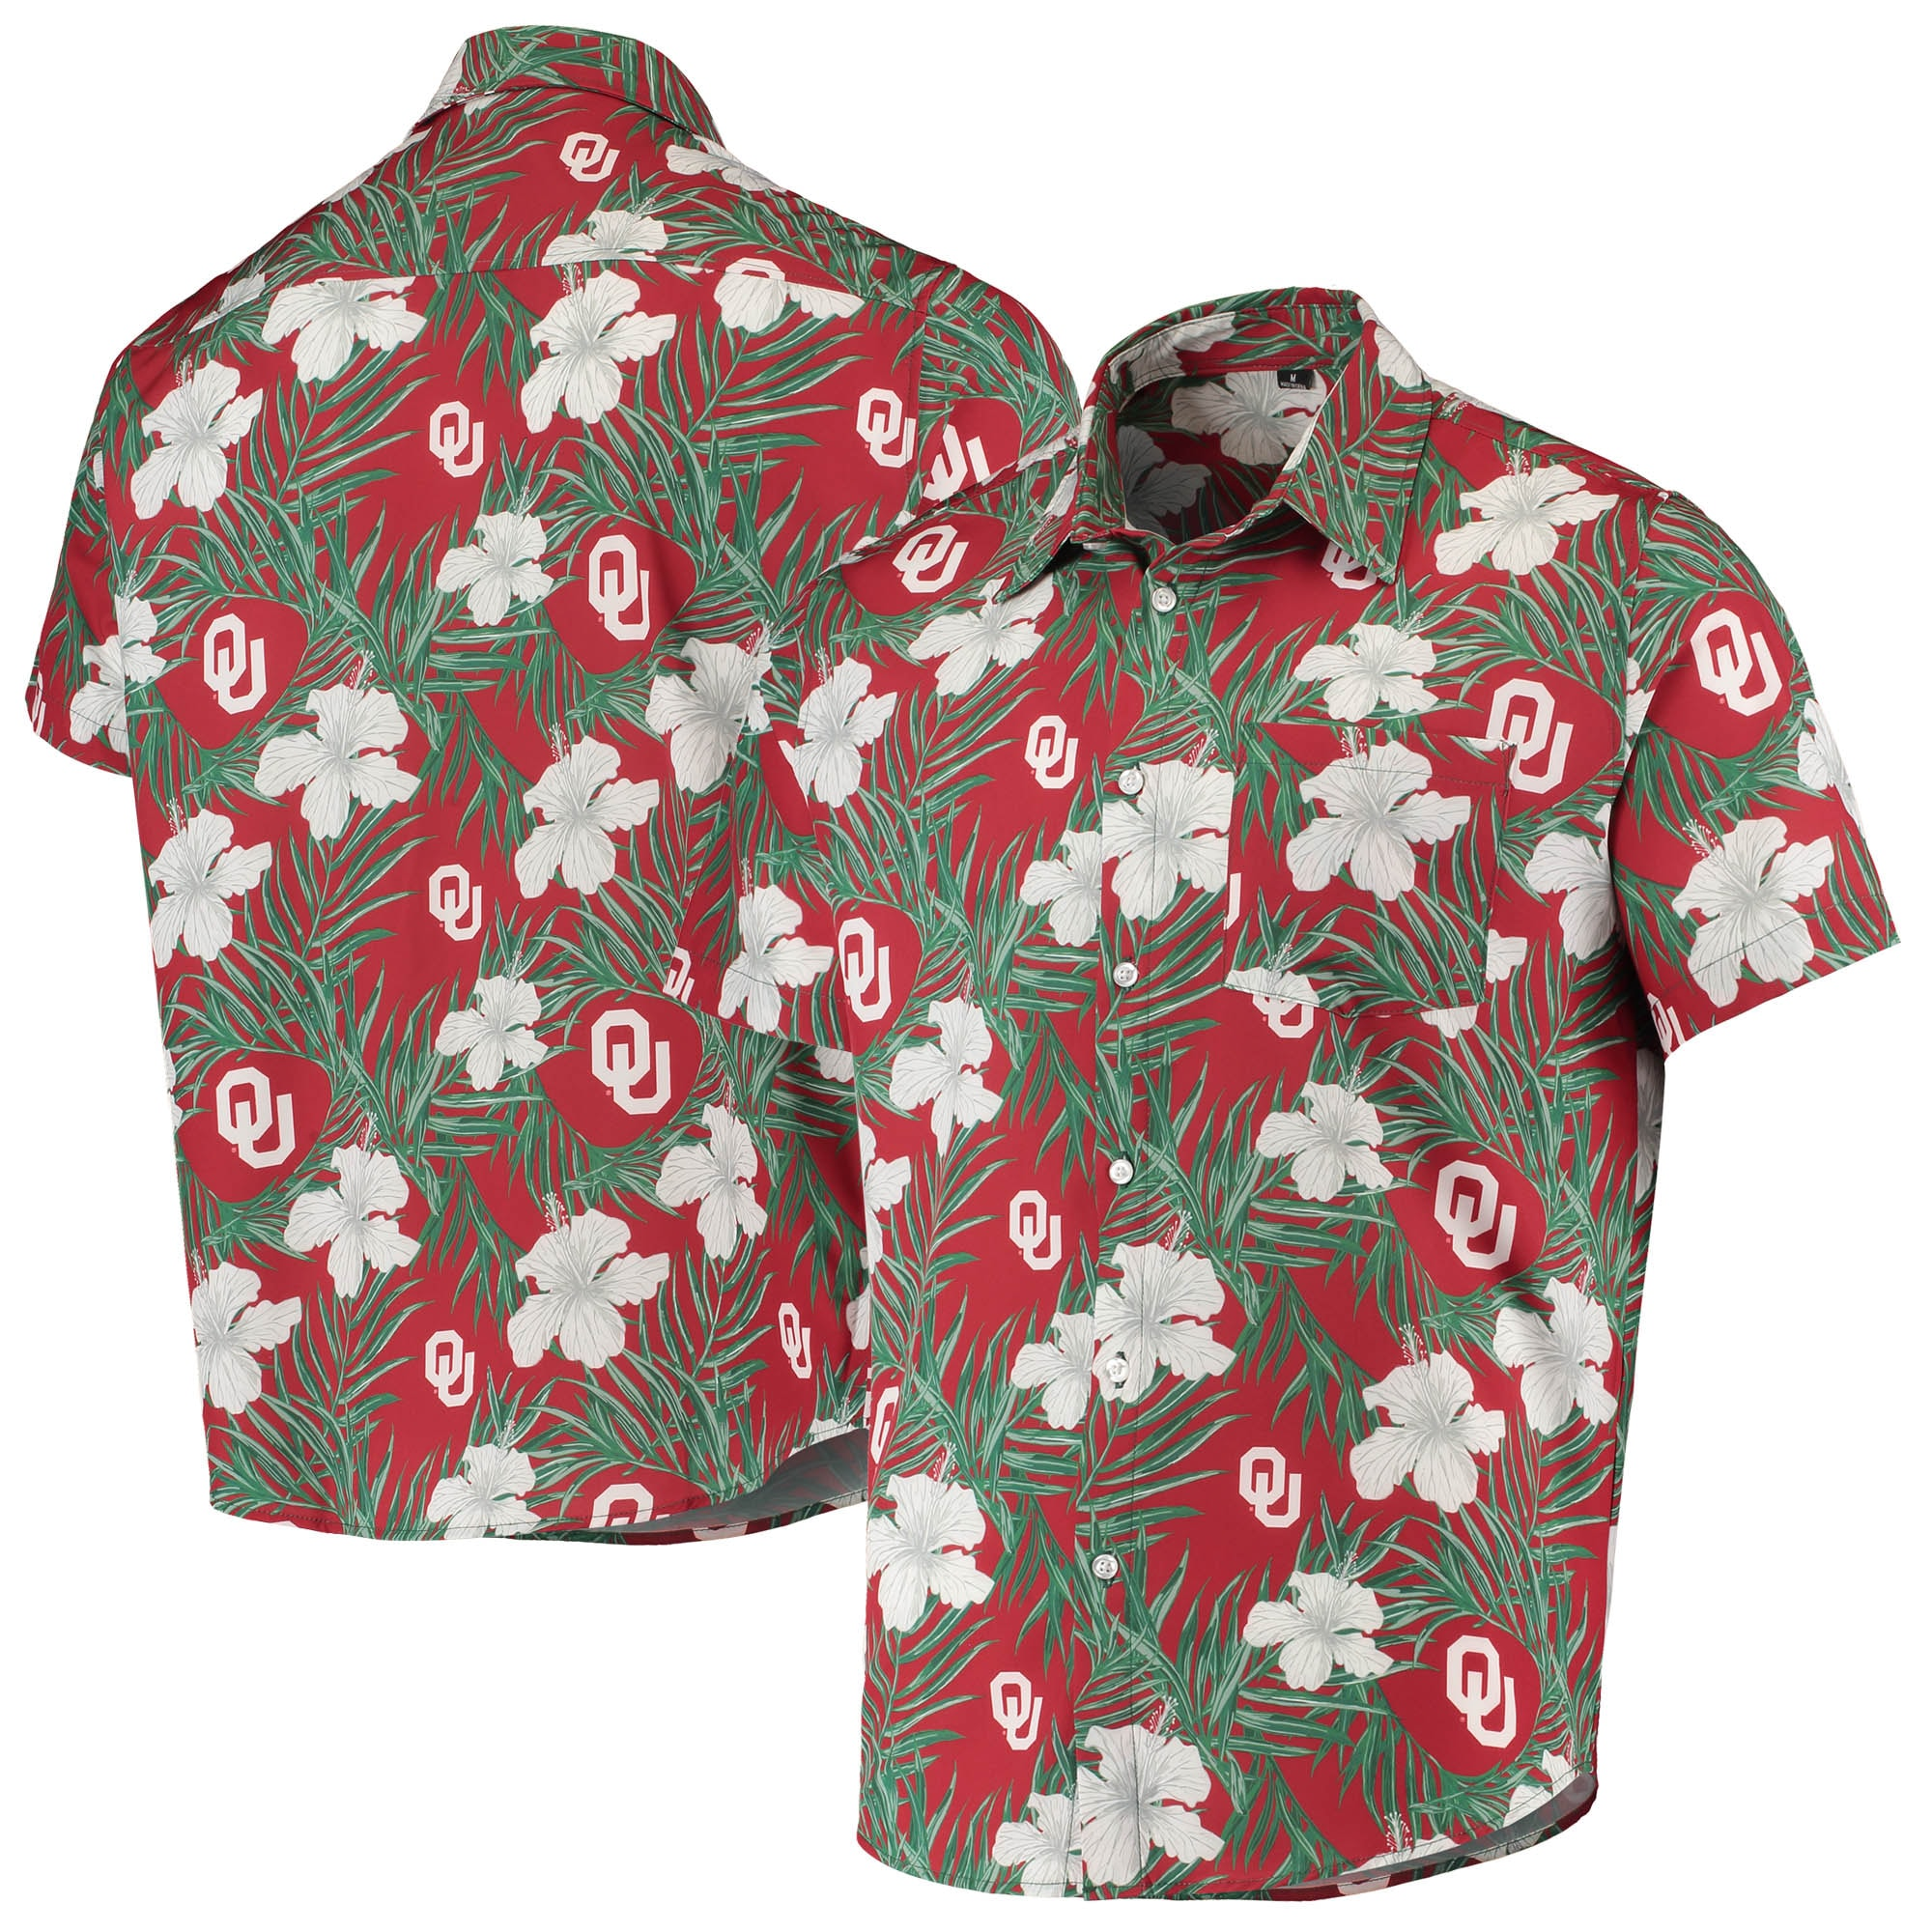 Washington Redskins Foco mens NFL Polyester Short Sleeve Thematic Polo Shirt RED